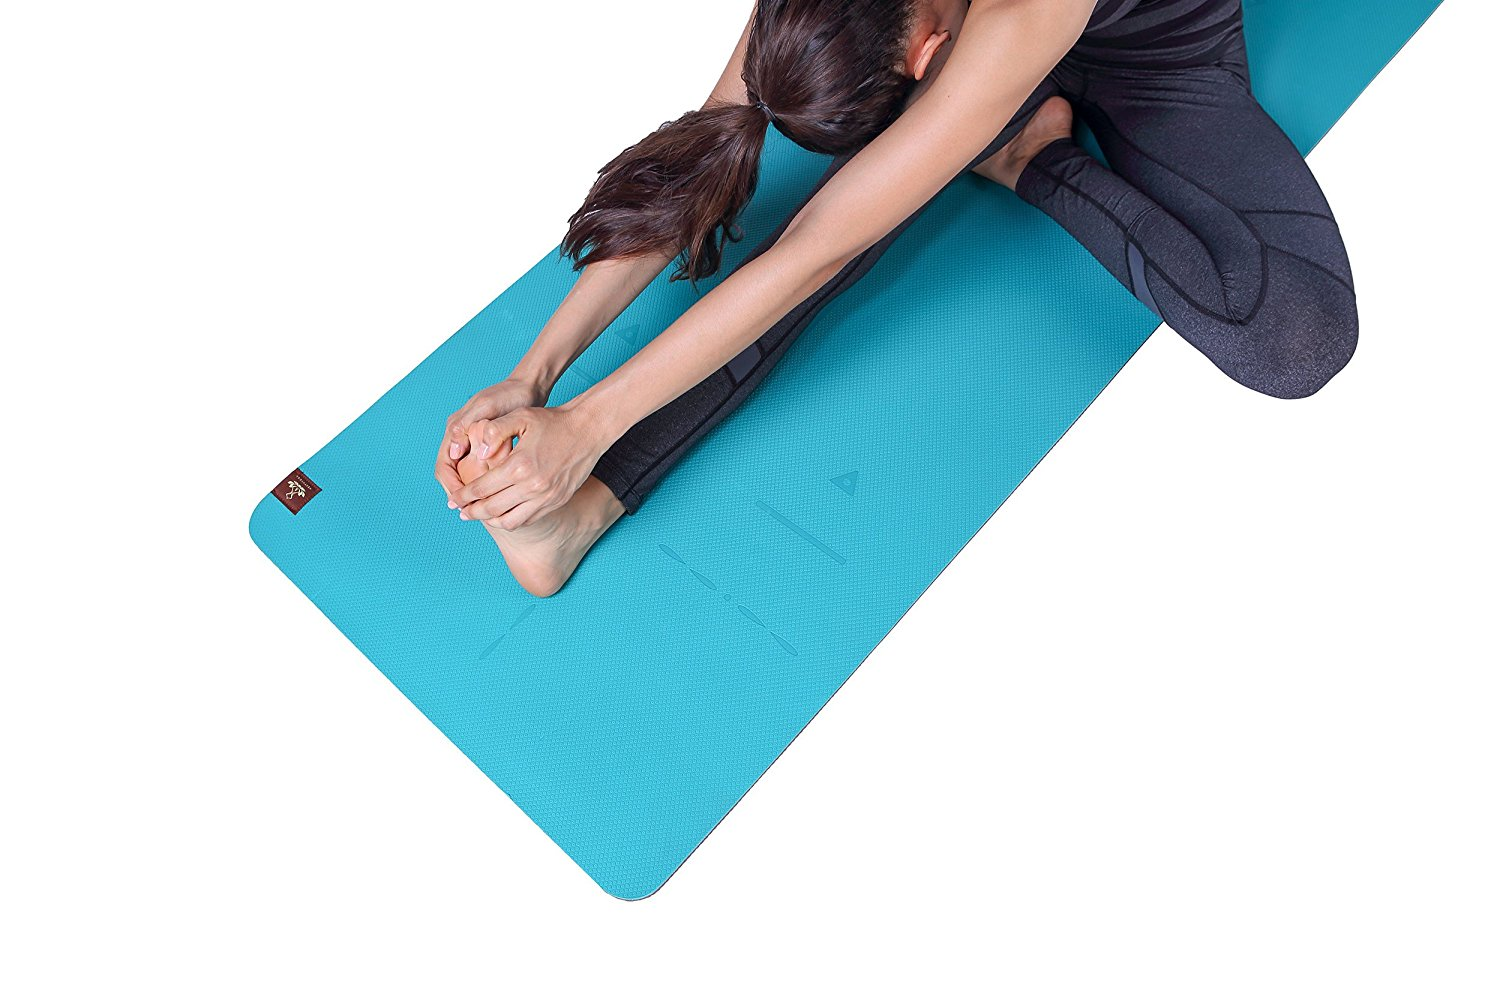 Heathyoga Eco Friendly Non Slip Yoga Mat, Body Alignment System, SGS Certified TPE Material